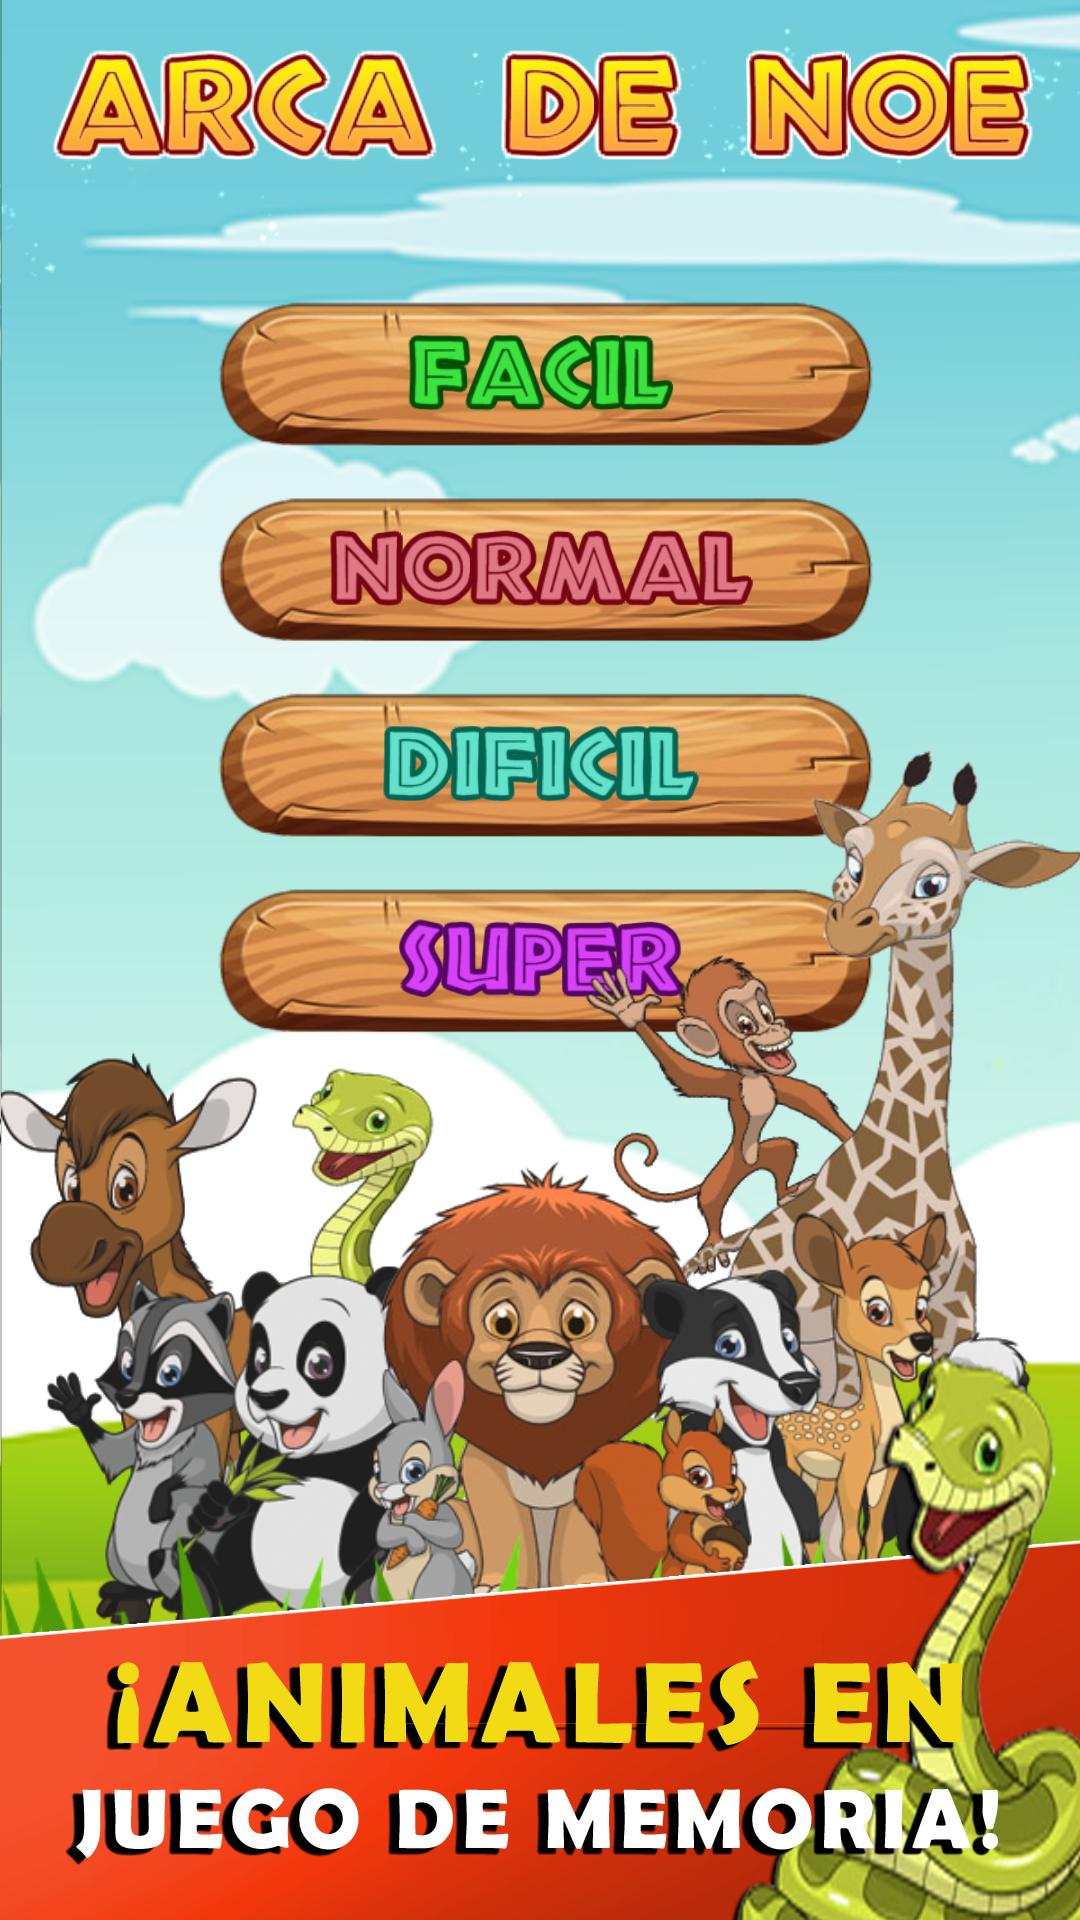 Juego memoria animales for Android - APK Download